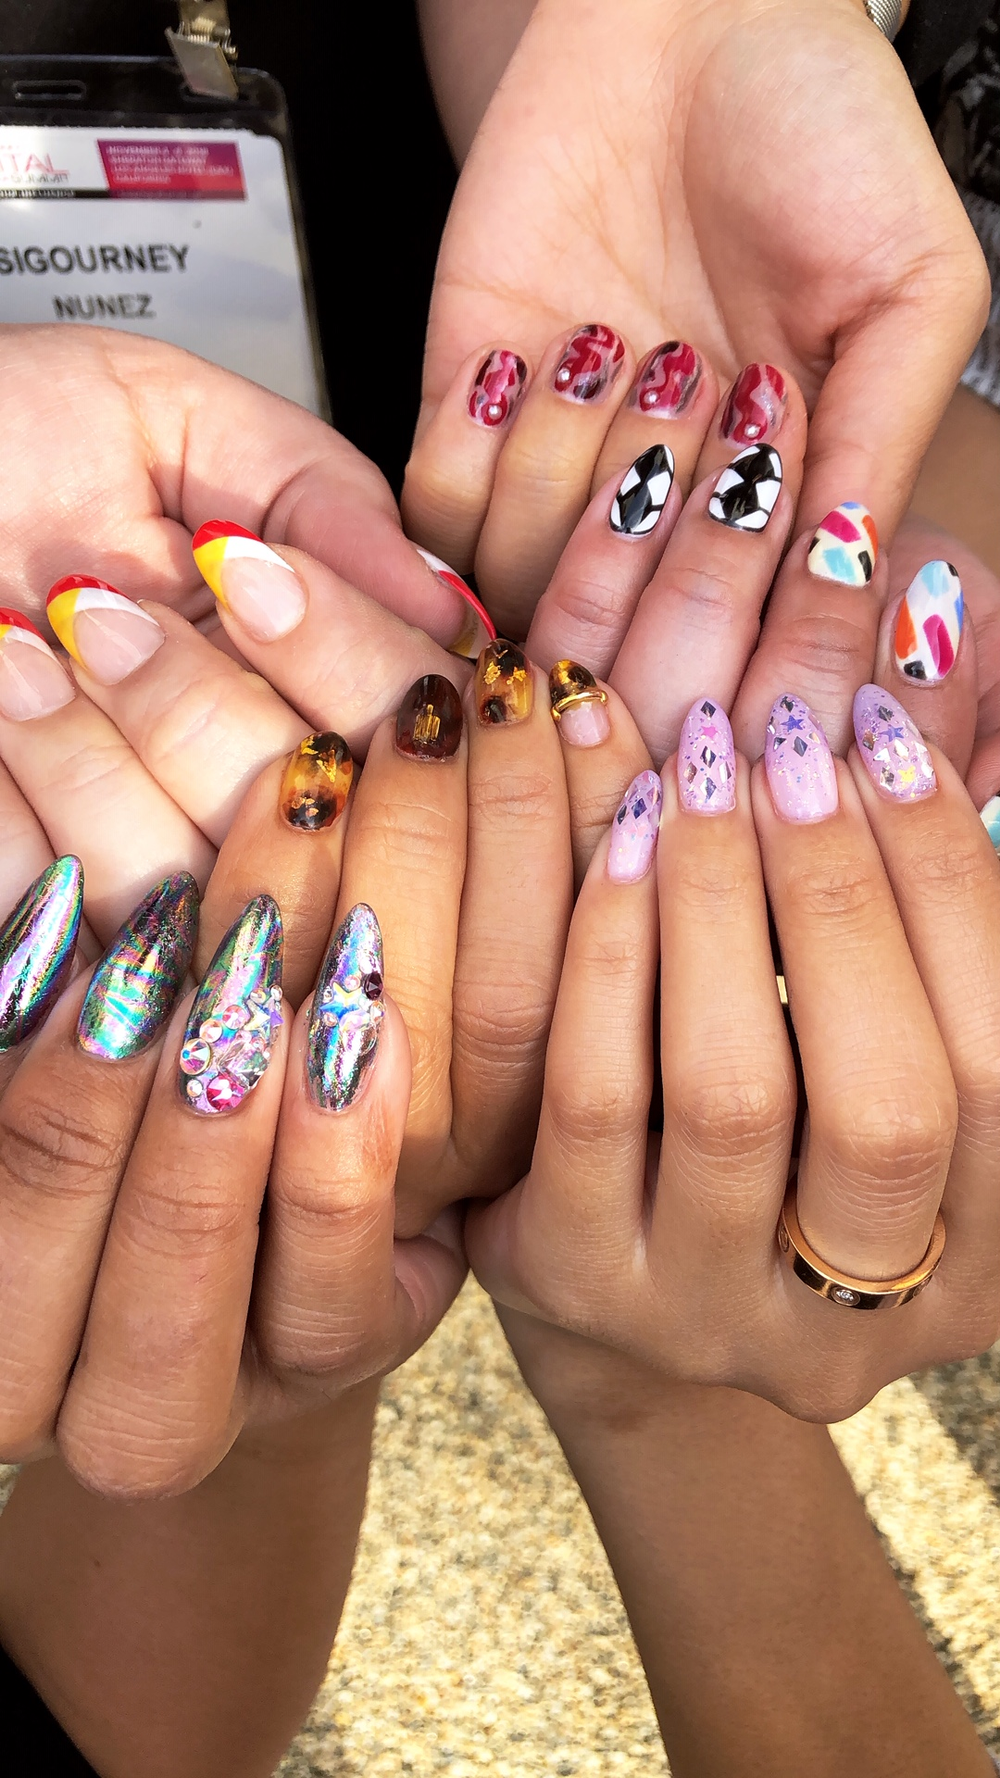 <p>Nail art worn to SDS sported by @nailuscious, @ashleygnails, @winnieisawesome, @nailartbysig, @ricekittynails</p>